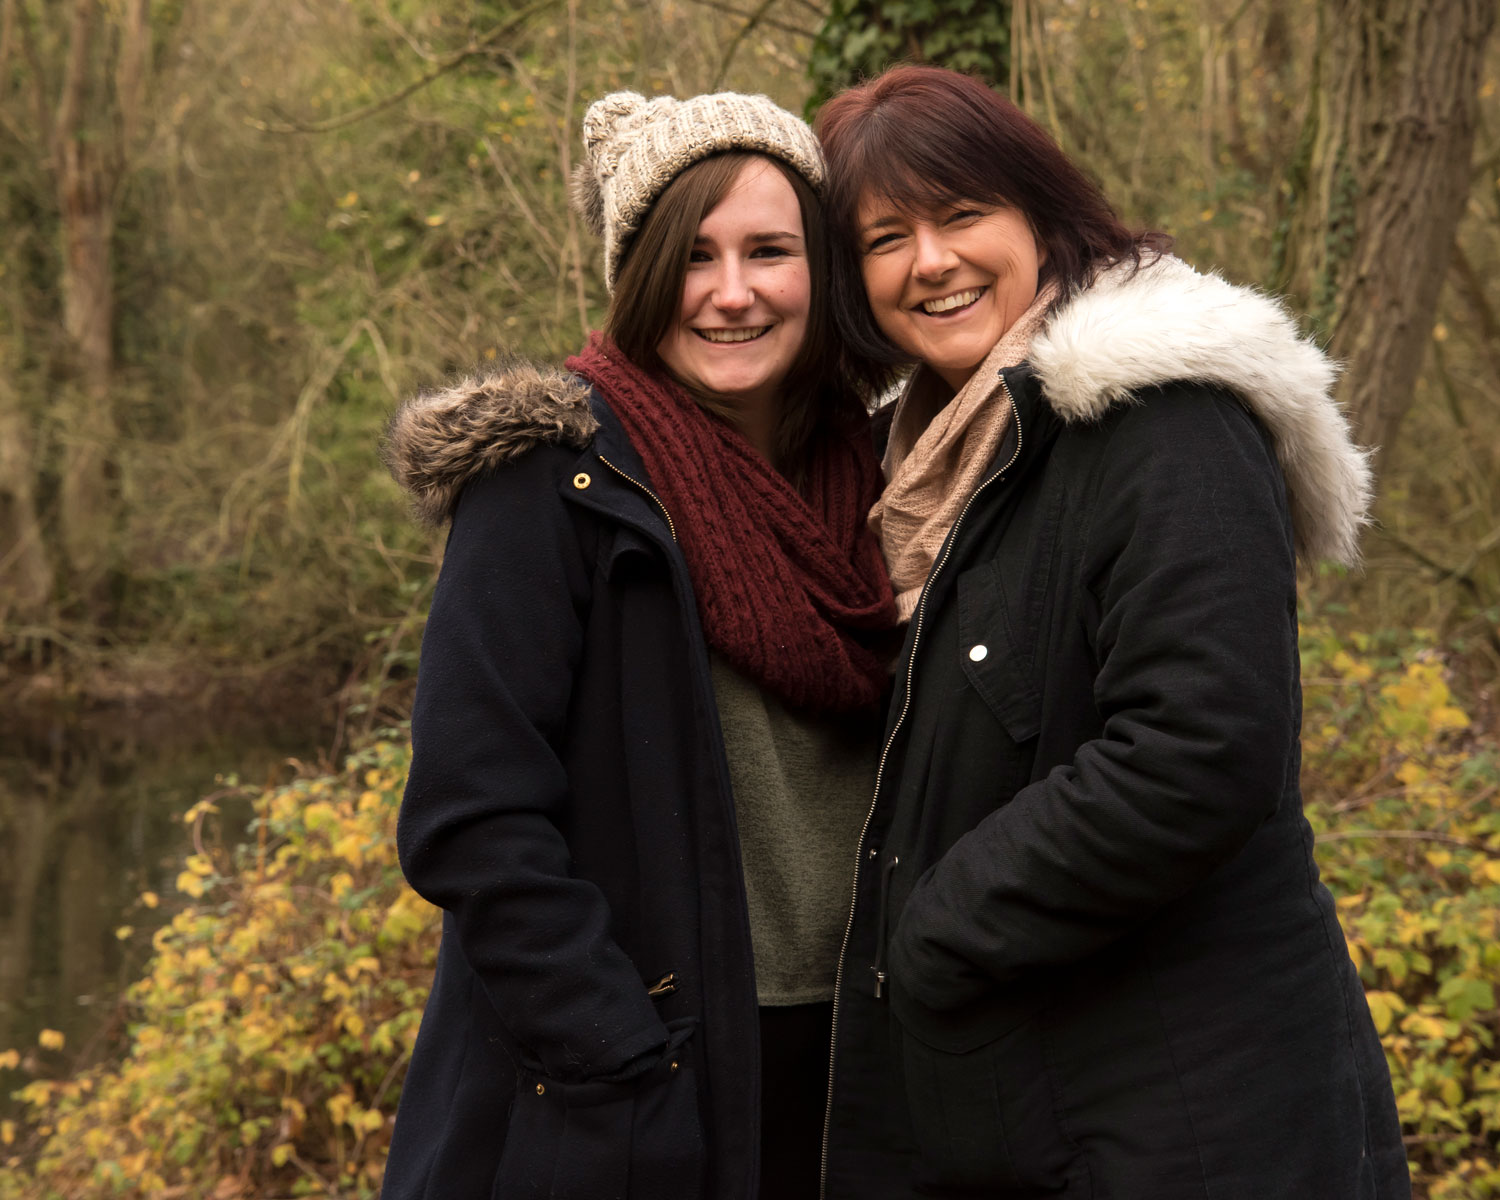 Family_photography_Ely_Cambridgeshire-mum_and_adult_daughter_cuddling.jpg